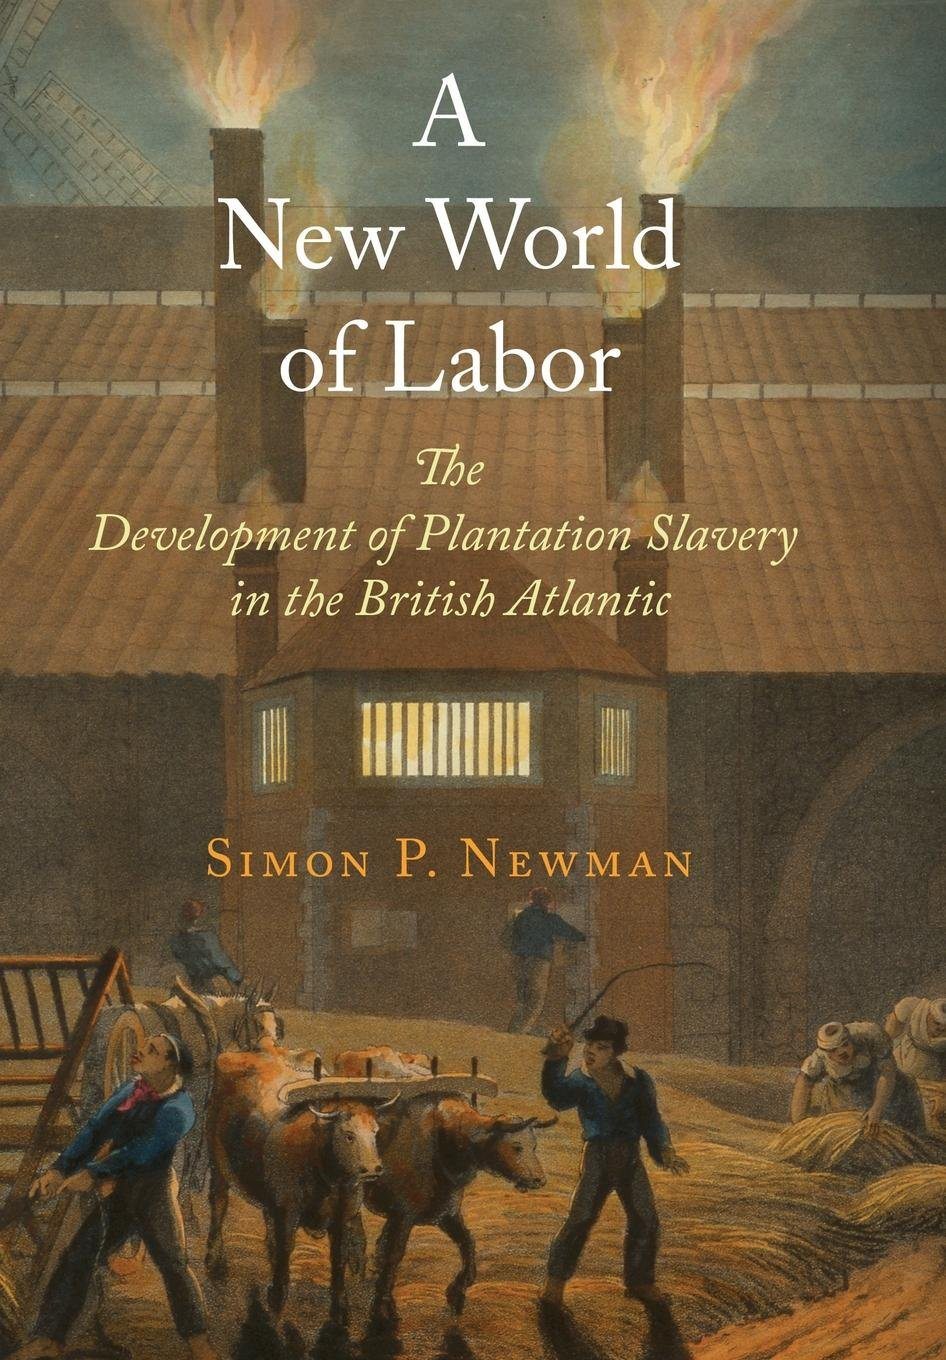 A New World of Labor: The Development of Plantation Slavery in the British Atlantic (The Early Modern Americas) pdf